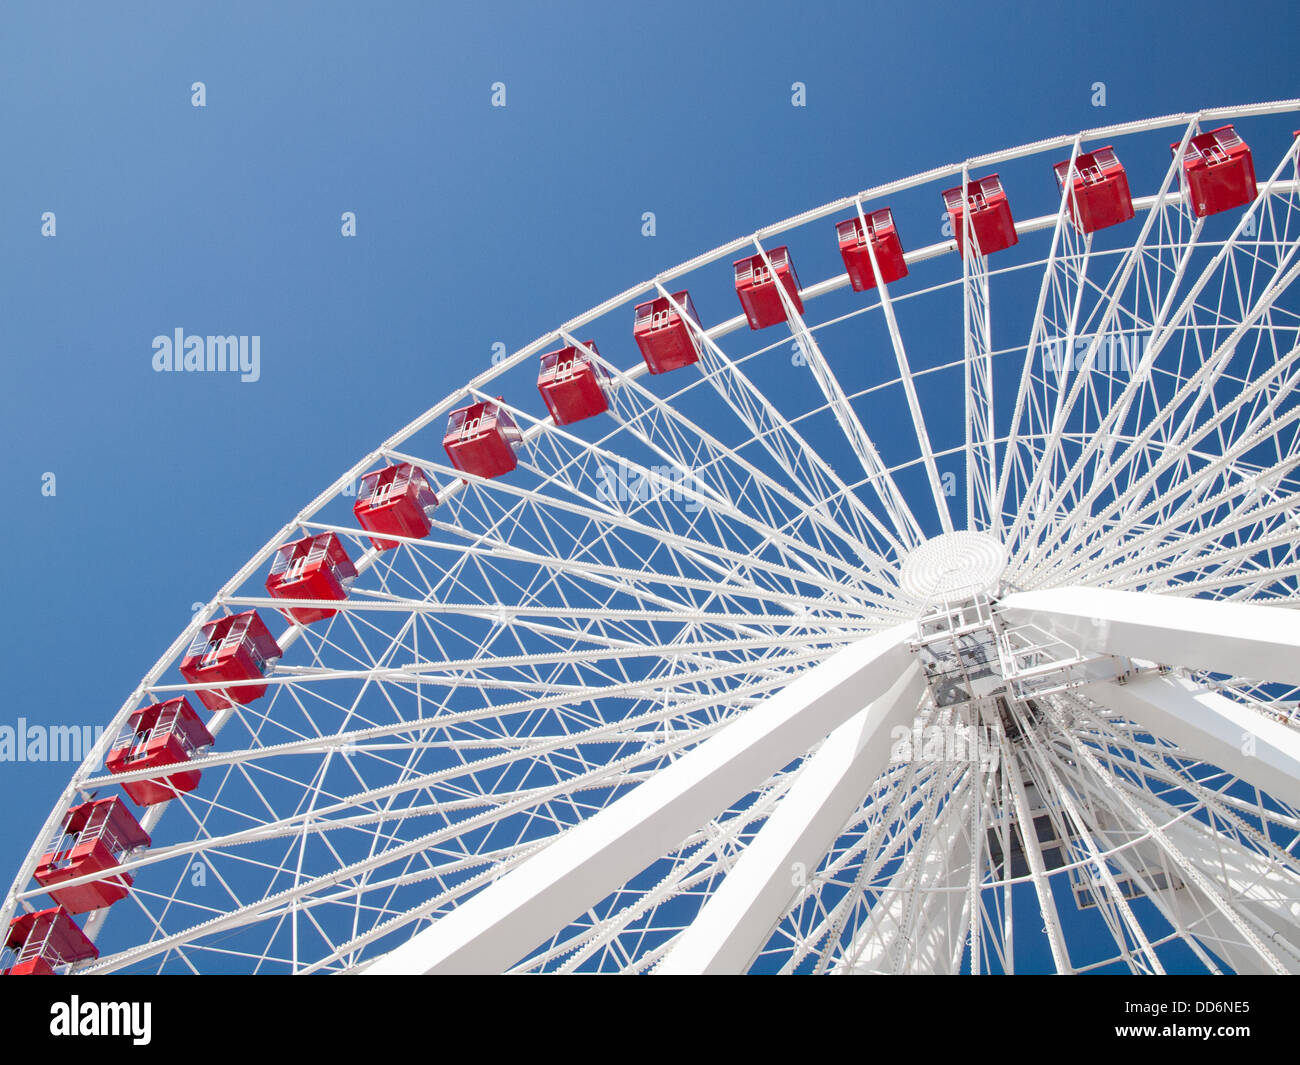 The awesome Ferris wheel at Navy Pier in Chicago, Illinois. - Stock Image